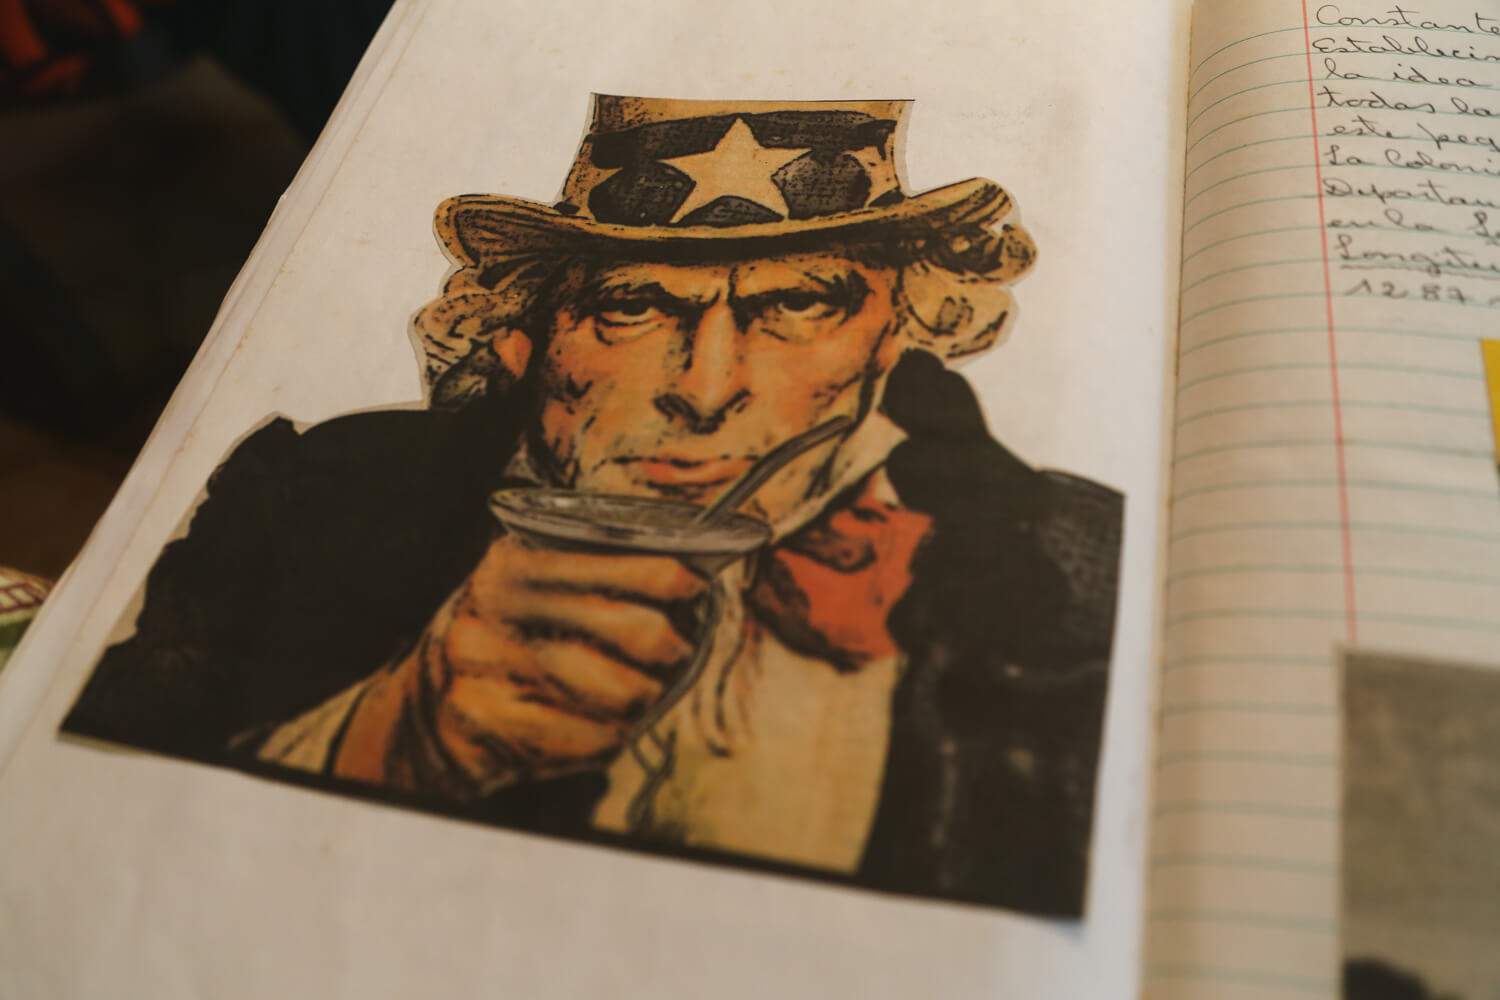 Uncle Sam wants you(r mate)!